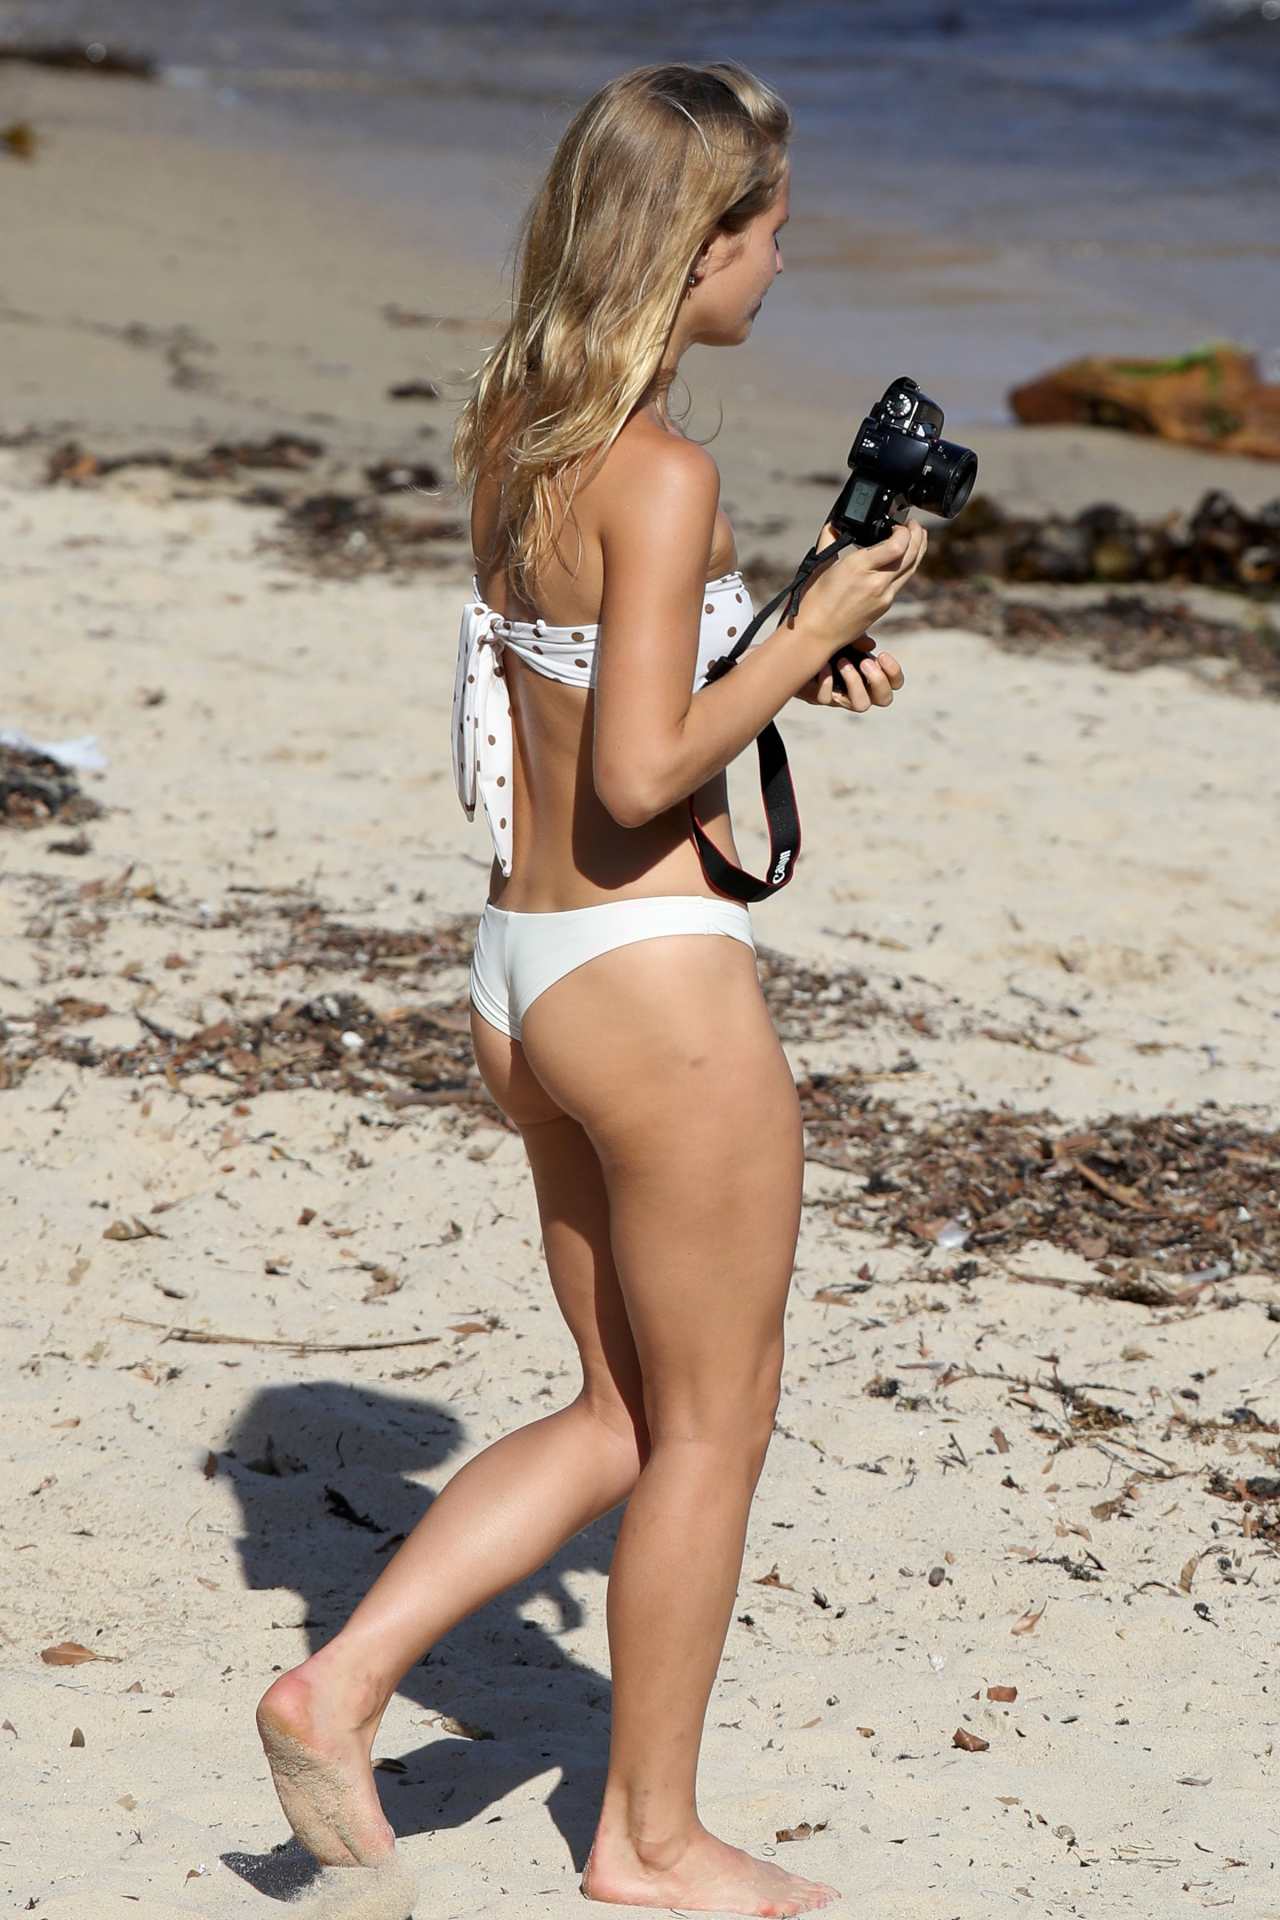 Sailor Brinkley-Cook in Bikini on the Beach in Sydney